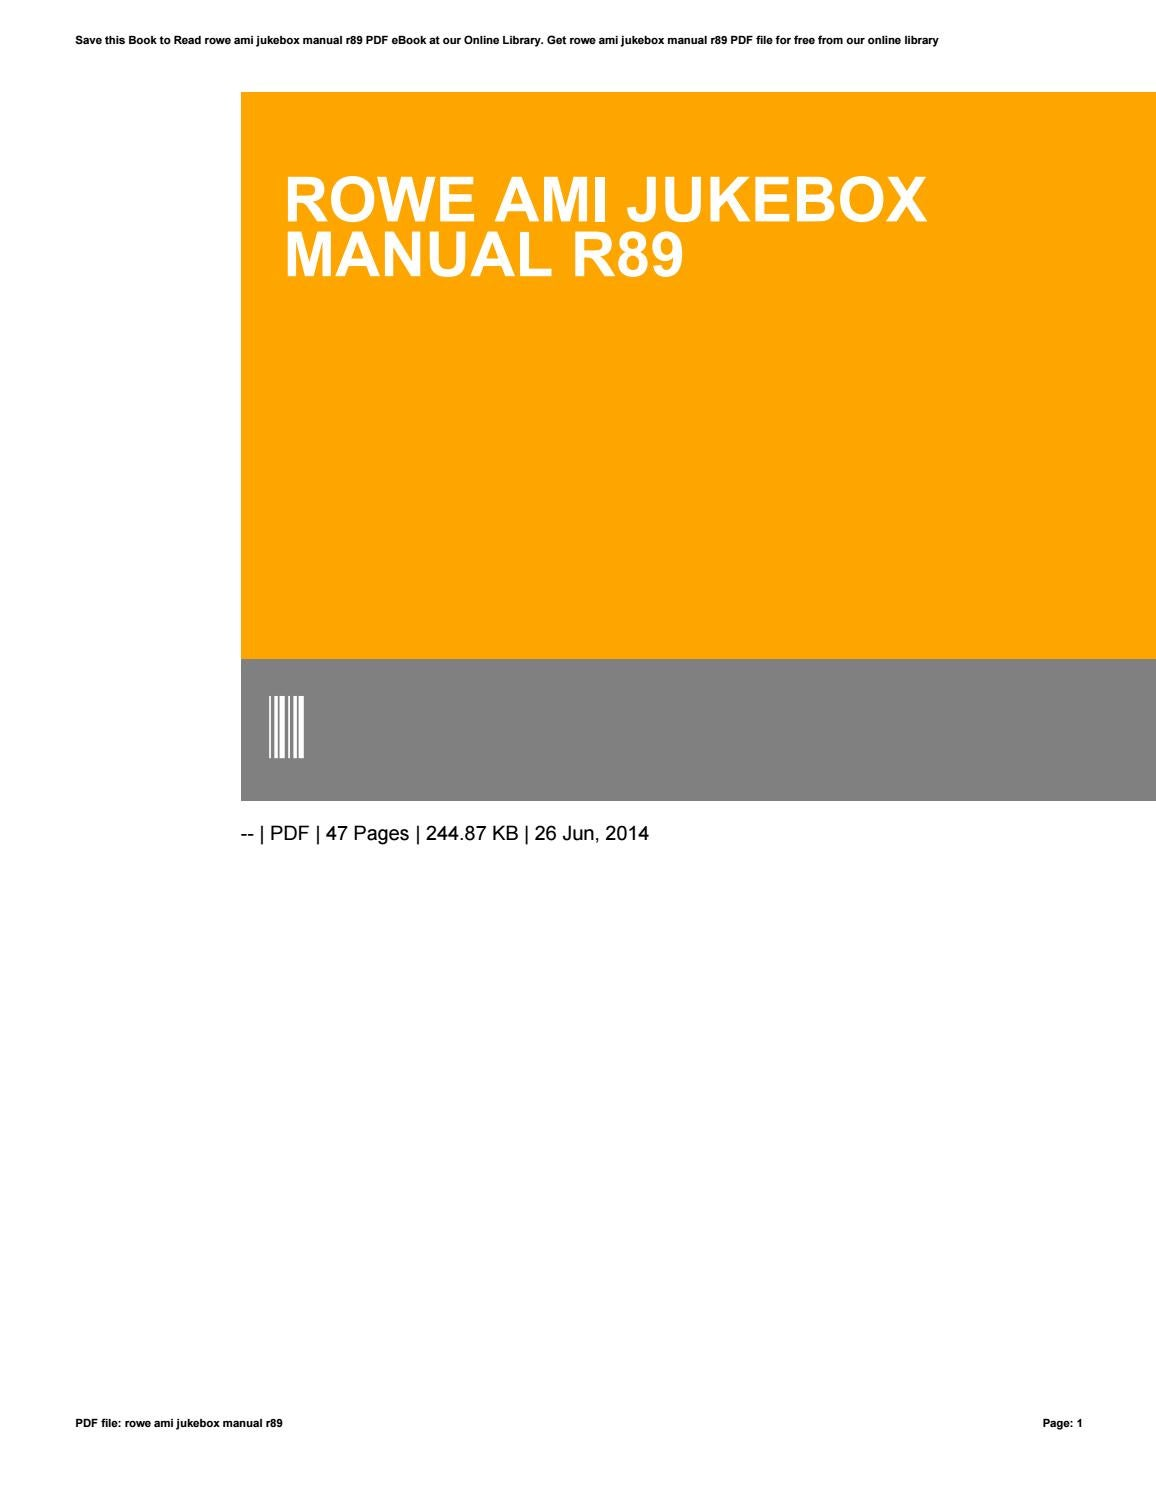 Rowe ami jukebox manual r89 by dff5559 - issuu